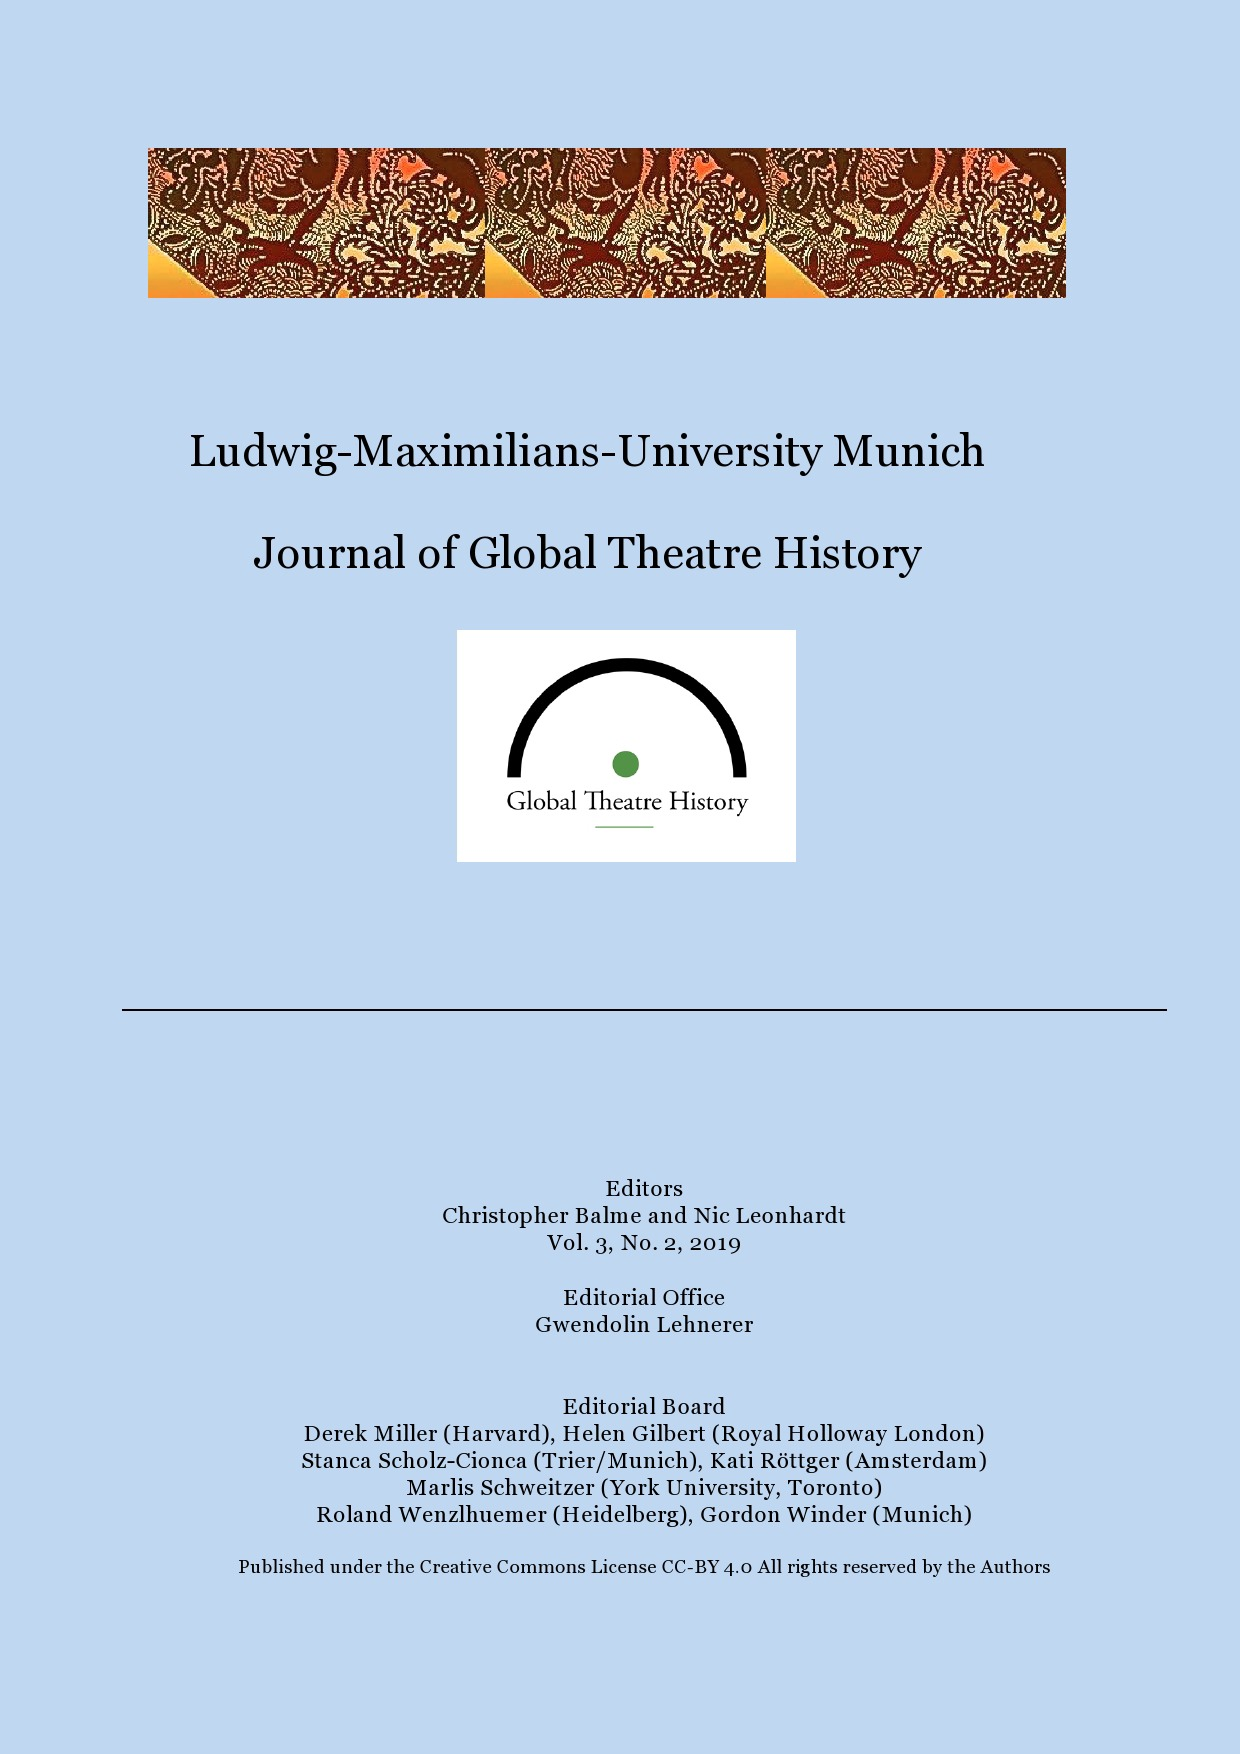 View Vol. 3 No. 2 (2019): Journal of Global Theatre History